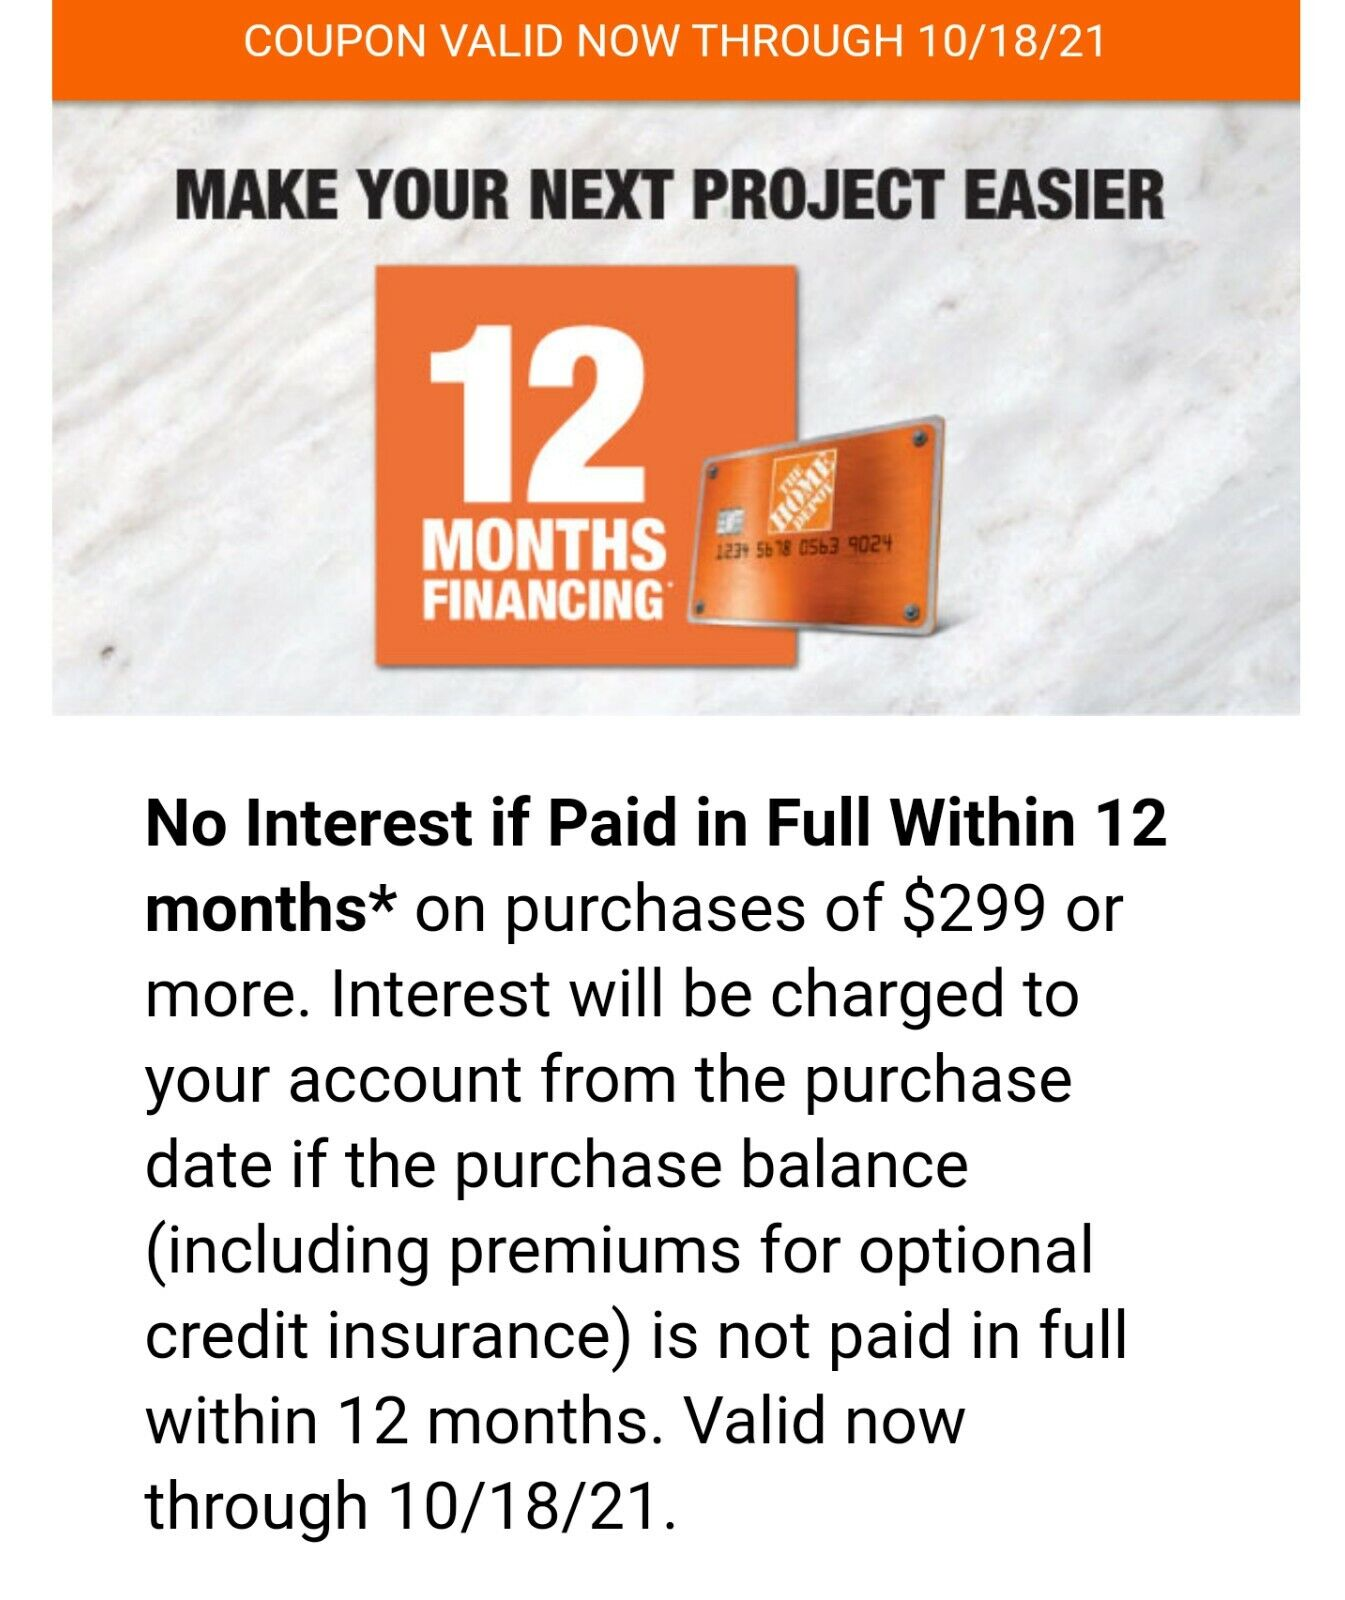 HOME DEPOT Coupon 12 Month No Interest Financing With 299 Exp 10/18/21 - $3.00